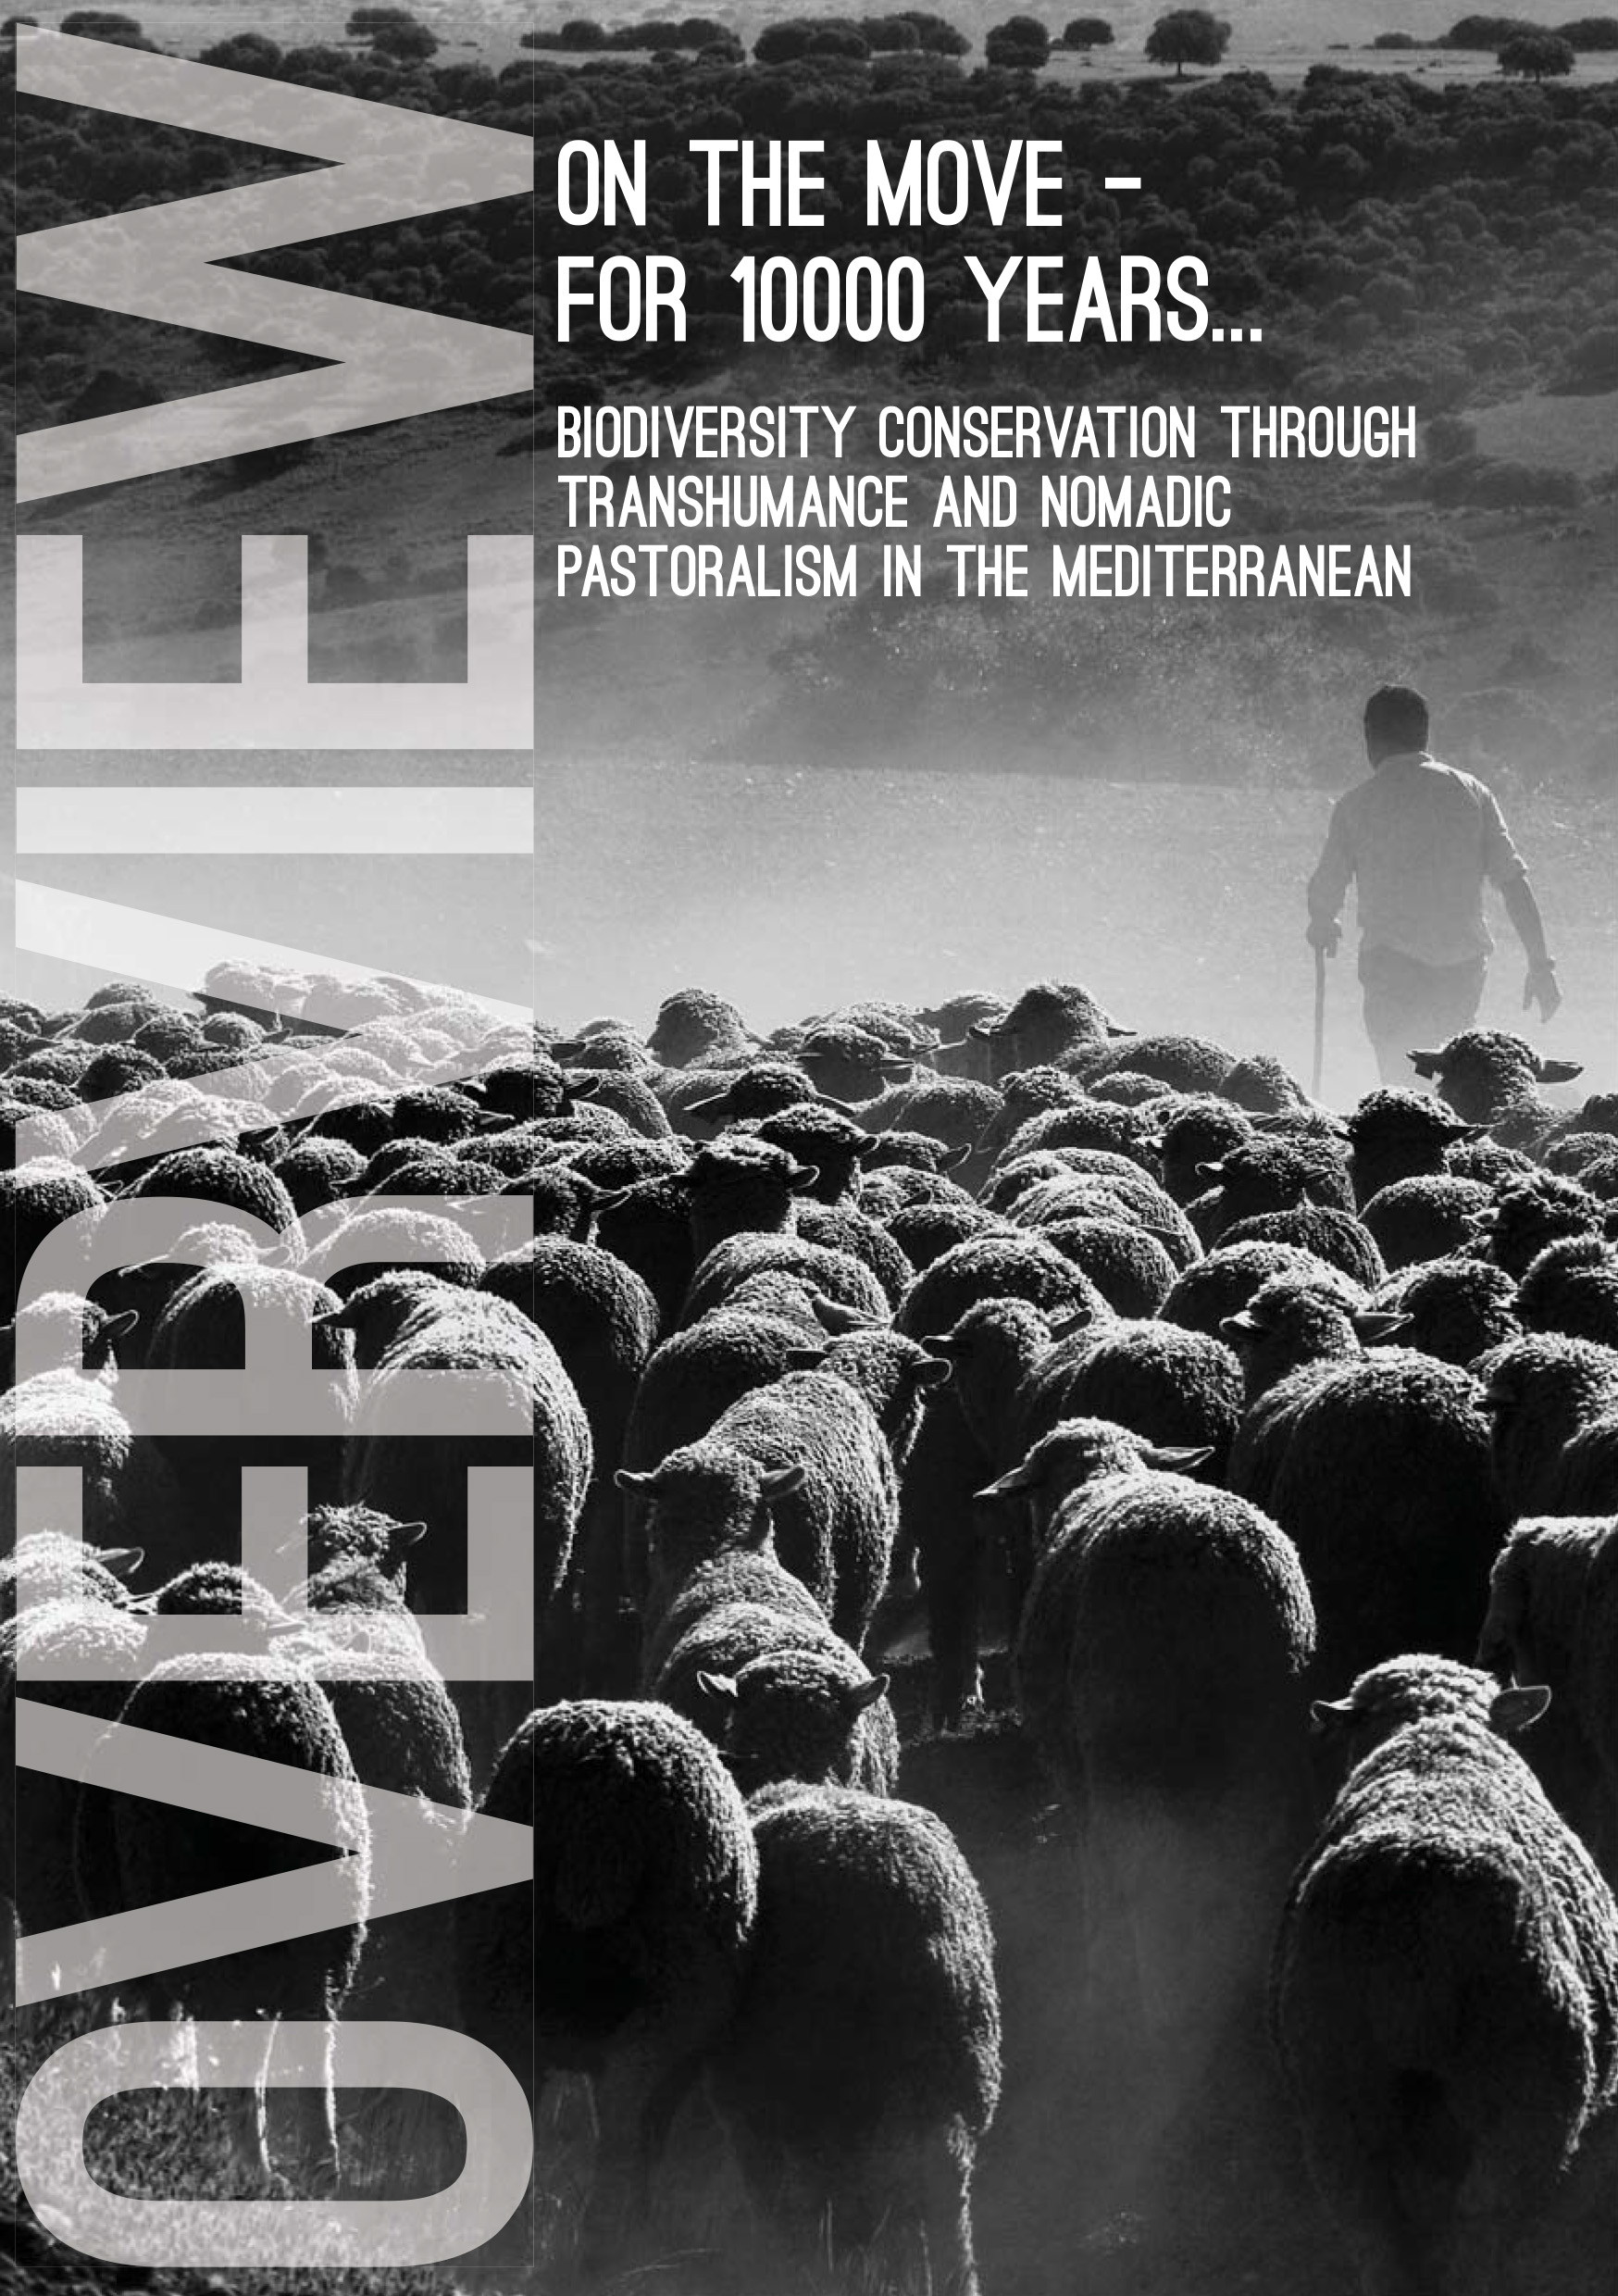 On the move - for 10000 years... Biodiversity Conservation through Transhumance and Nomadic Pastoralism in the Mediterranean